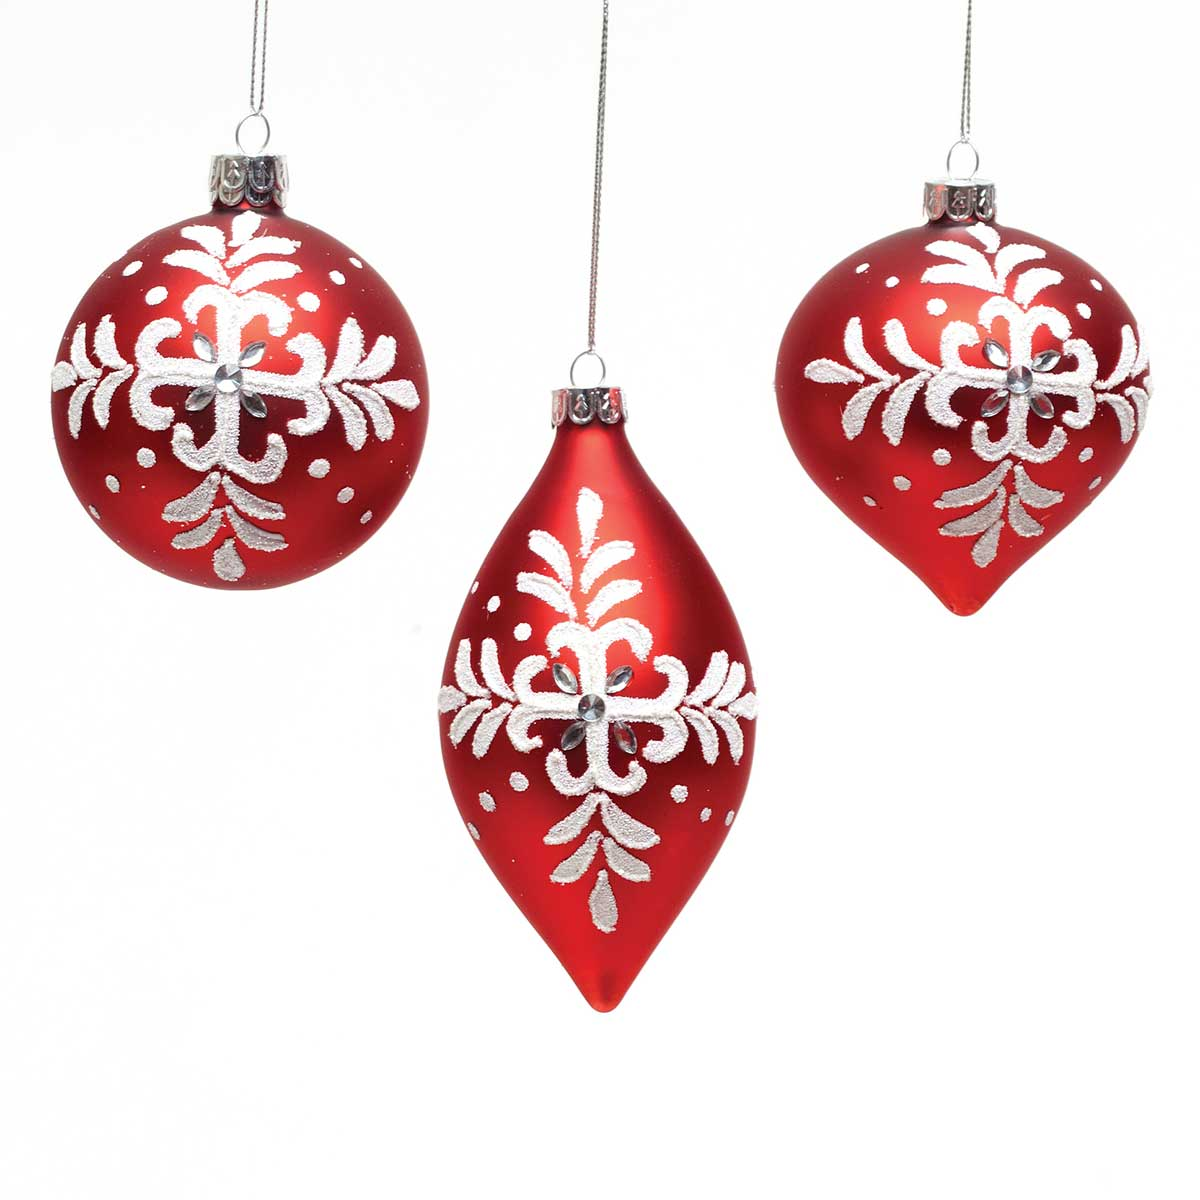 FLEUR DE FLORAL ORNAMENT 3 ASSORTED